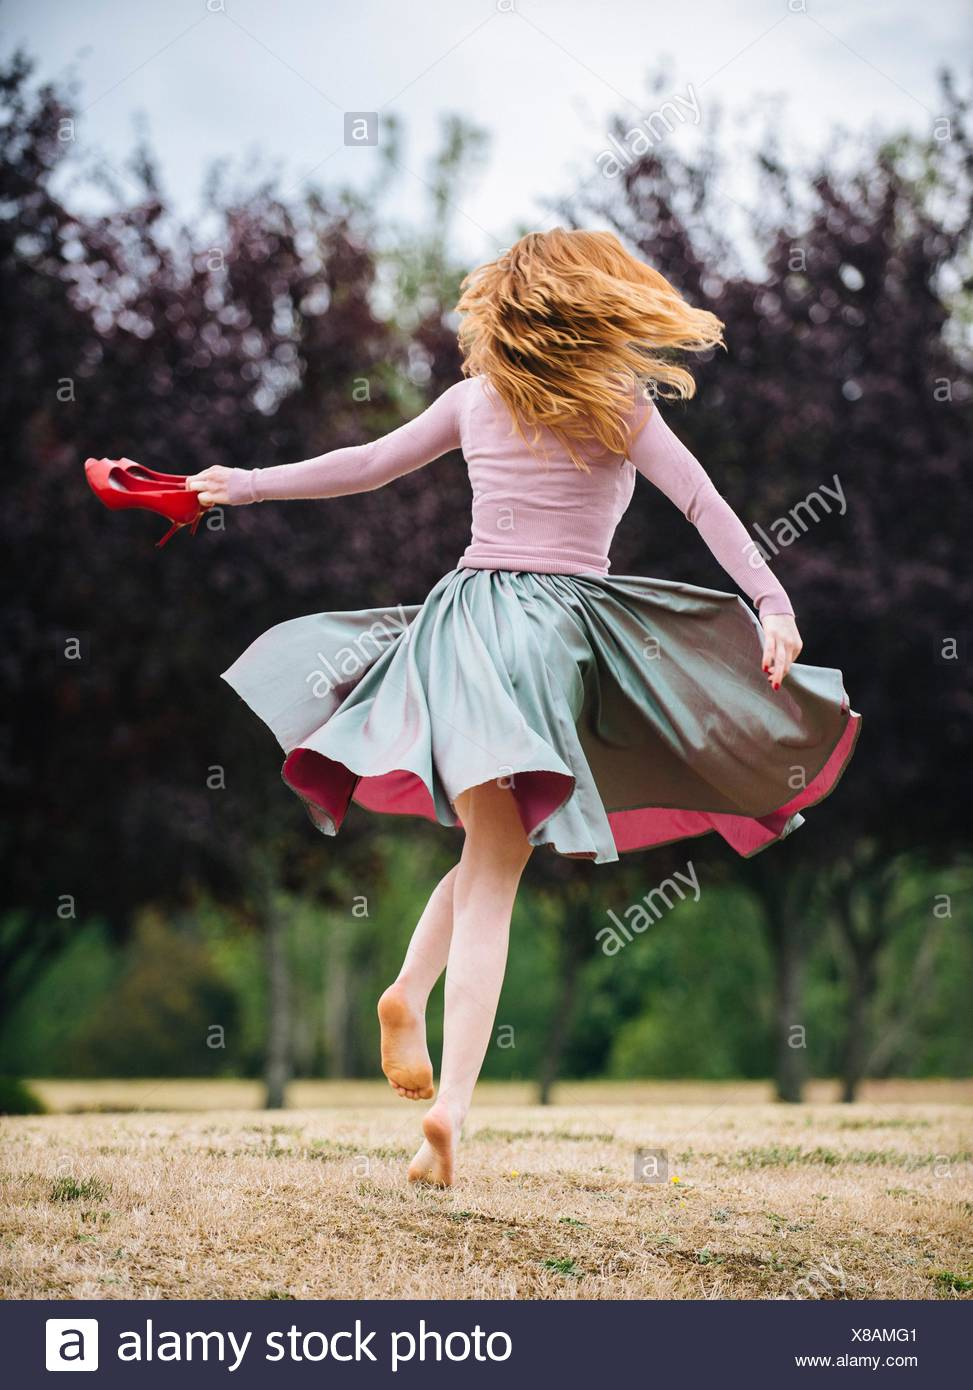 Rear view of young woman dancing and twirling and in park - Stock Image